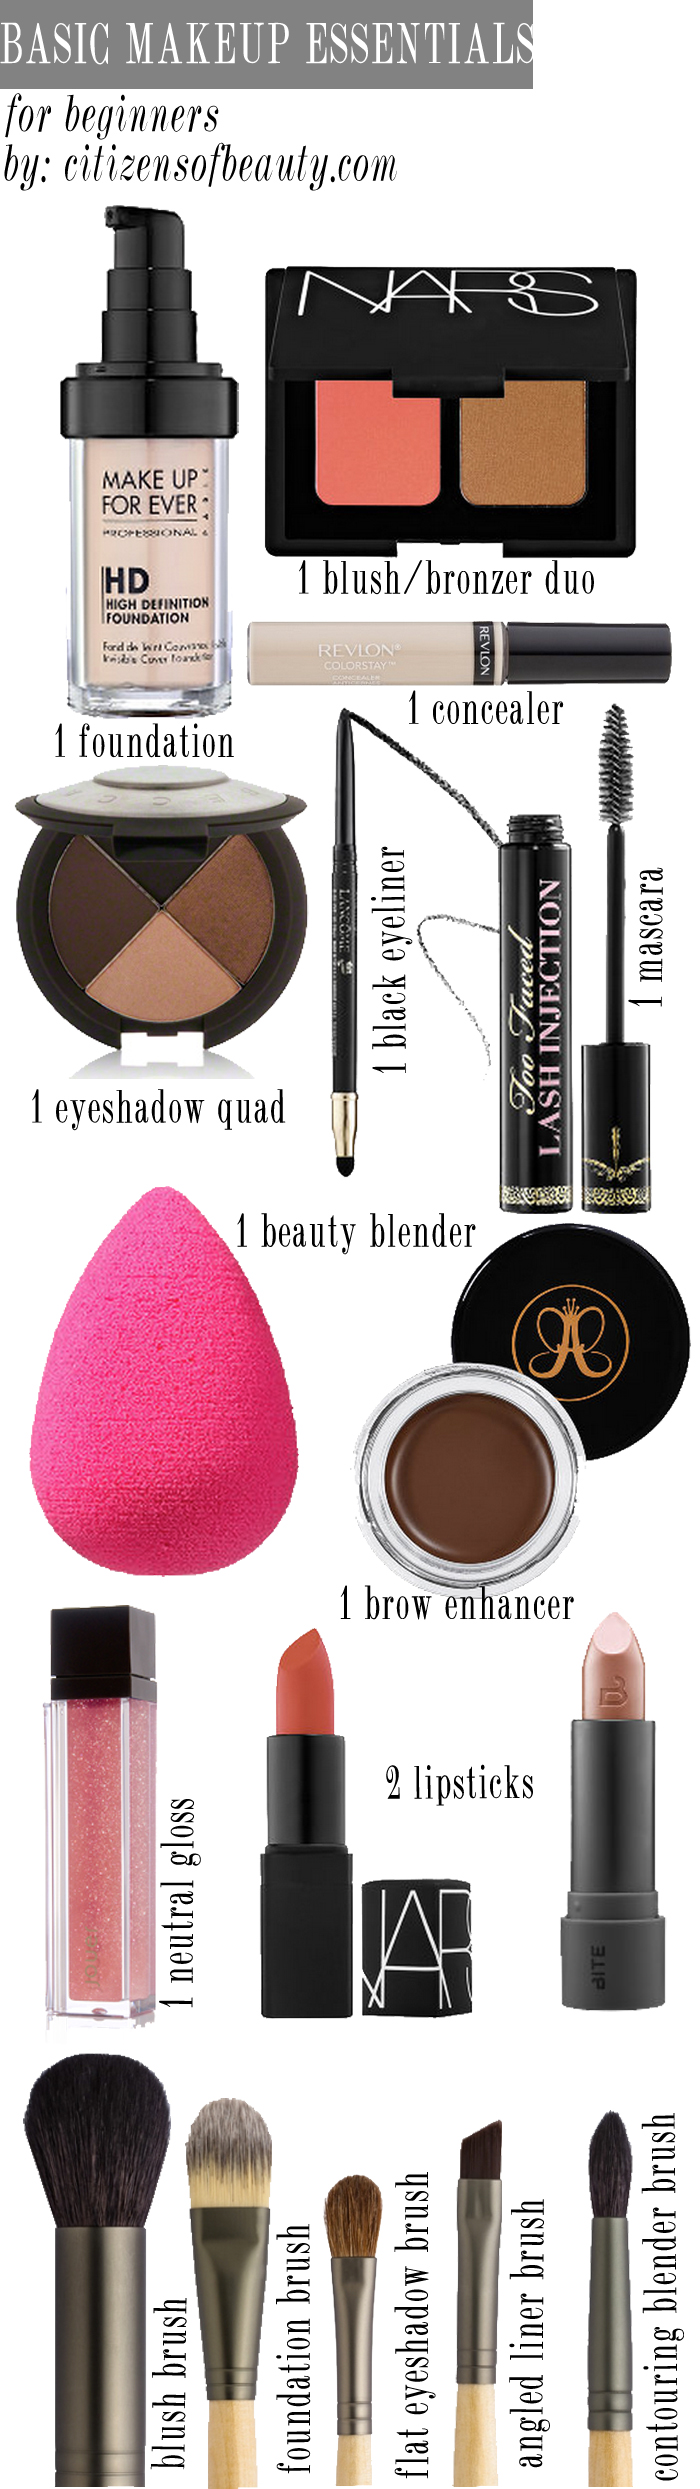 makeup essentials shopping guide for beginners